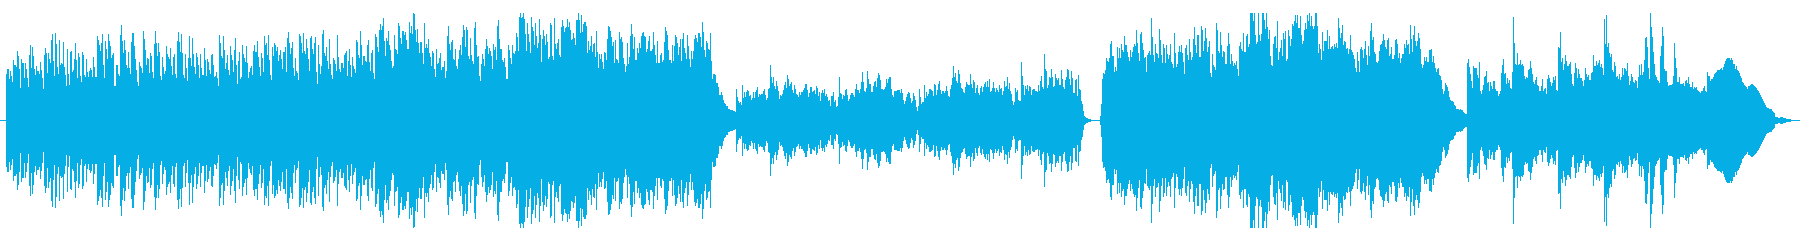 [Drama accompaniment] For serious conversation scenes's reproduced waveform